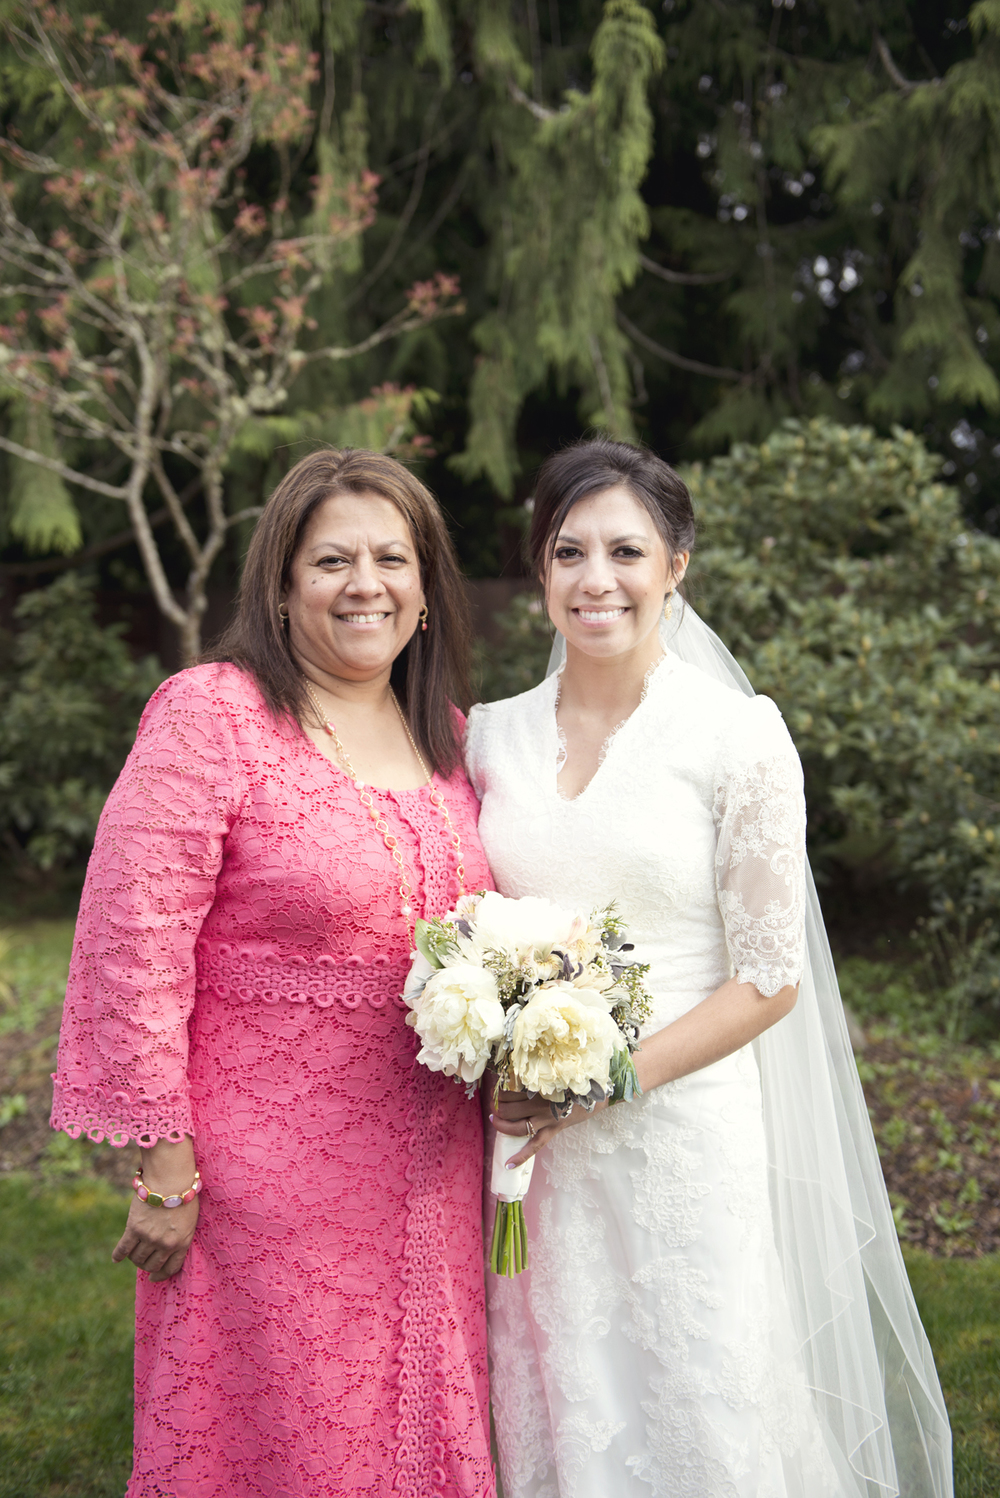 seattleweddingphotography_020.jpg